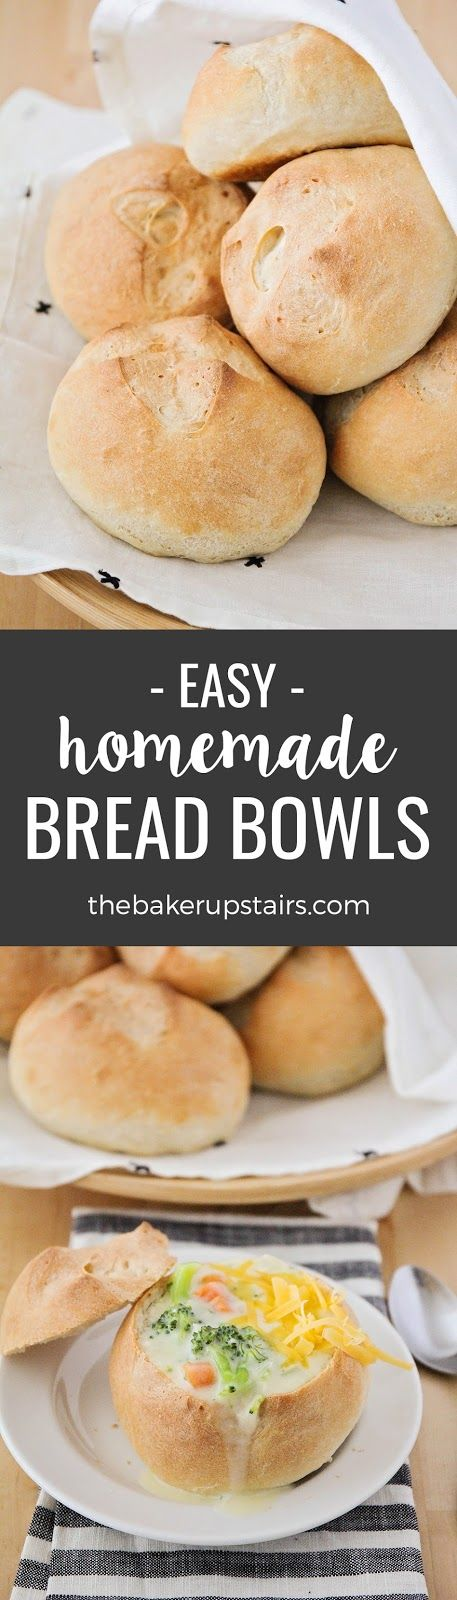 Homemade bread bowls are surprisingly easy to make, and so delicious. Perfect for soup night or for serving dips!